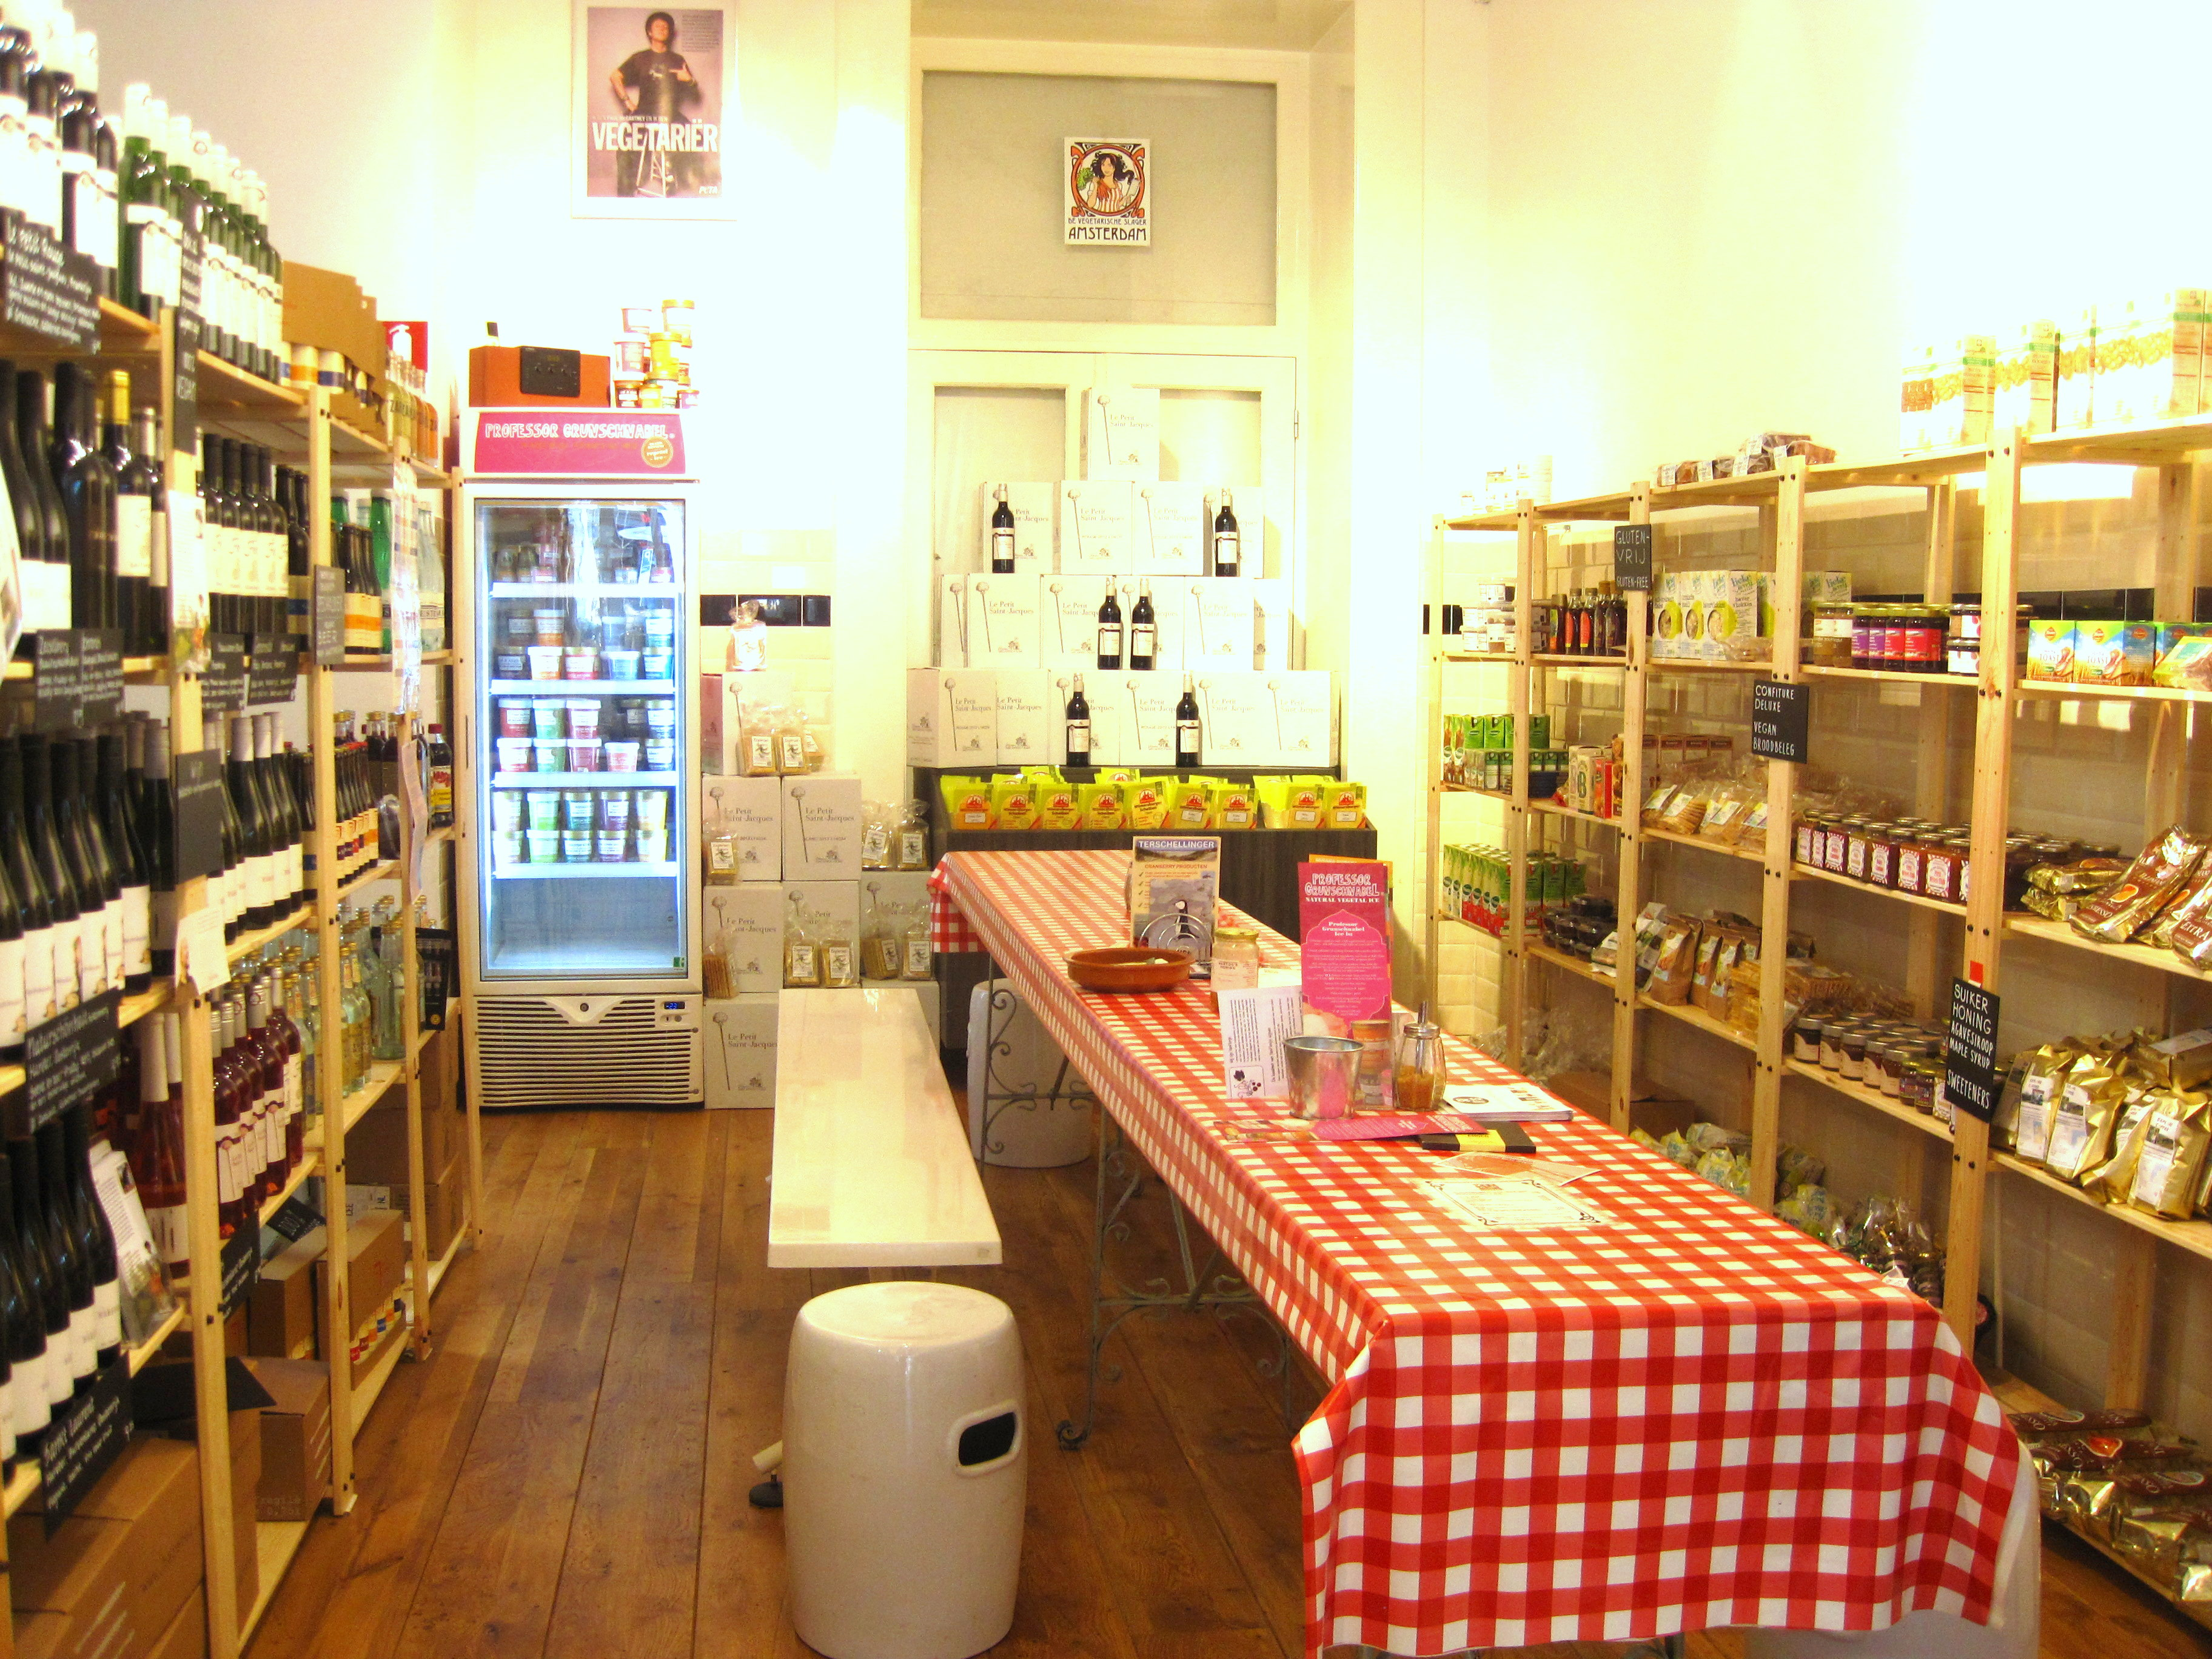 """De Vegetarische Traiteur Amsterdam carries all types of """"fake meat"""" products that can make vegetarian dining a bit more diverse as well as a range of other healthy foods and condiments."""